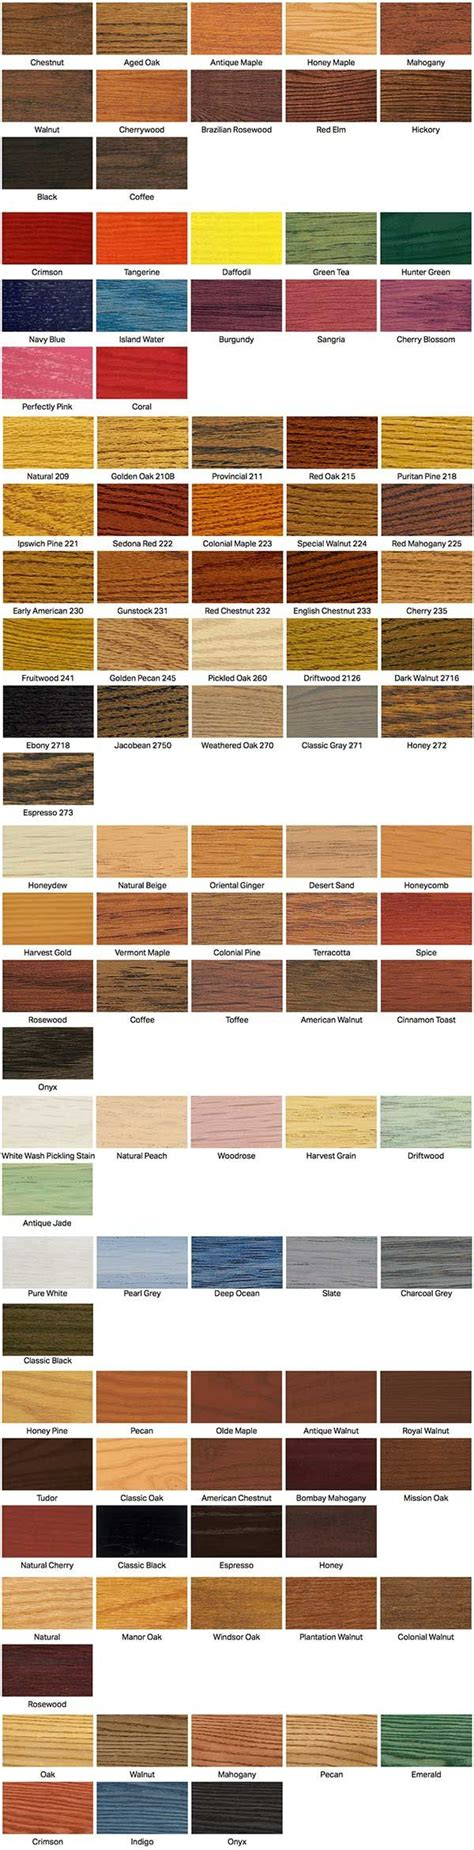 wood floor colors wood floor stain colors from minwax by indianapolis